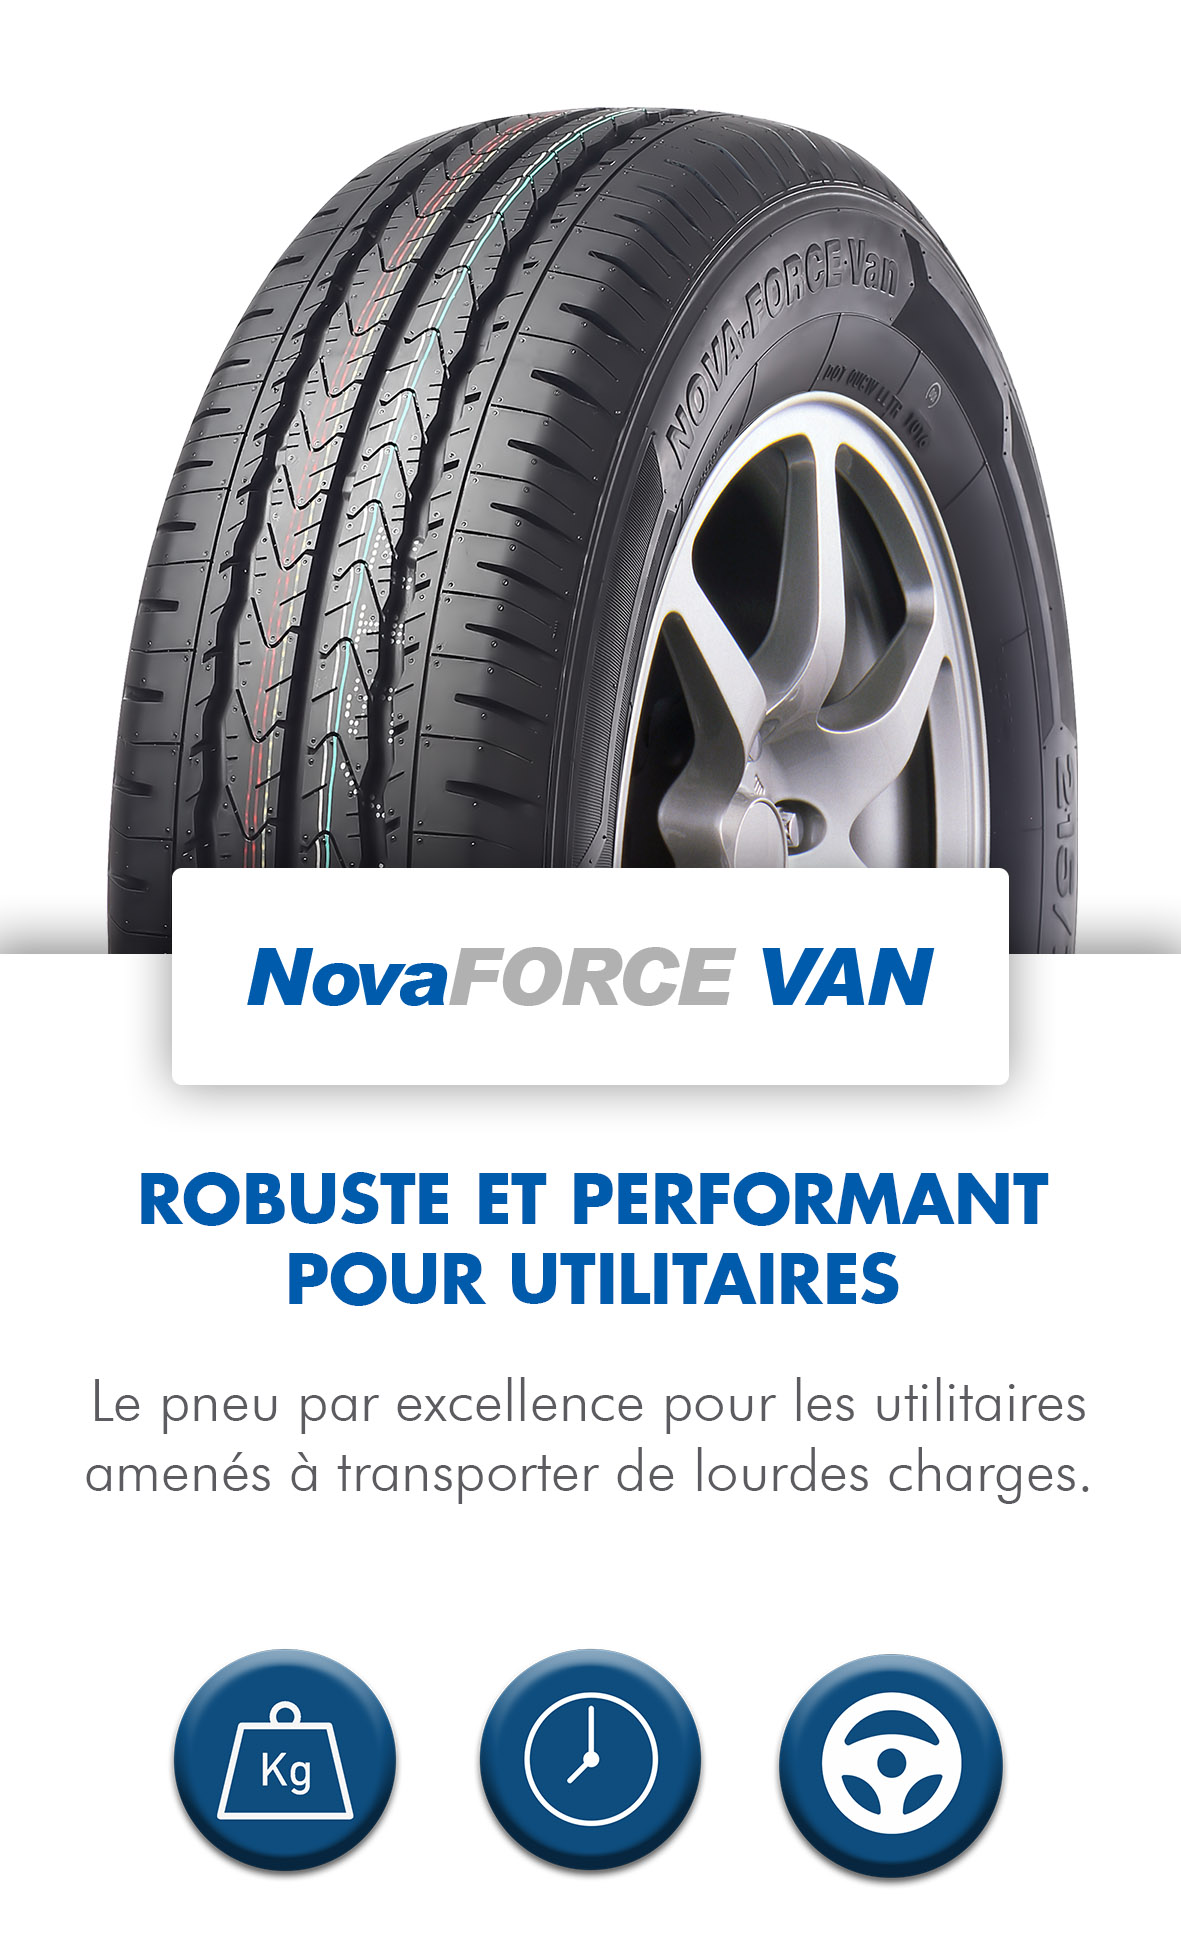 NovaForce4VAN